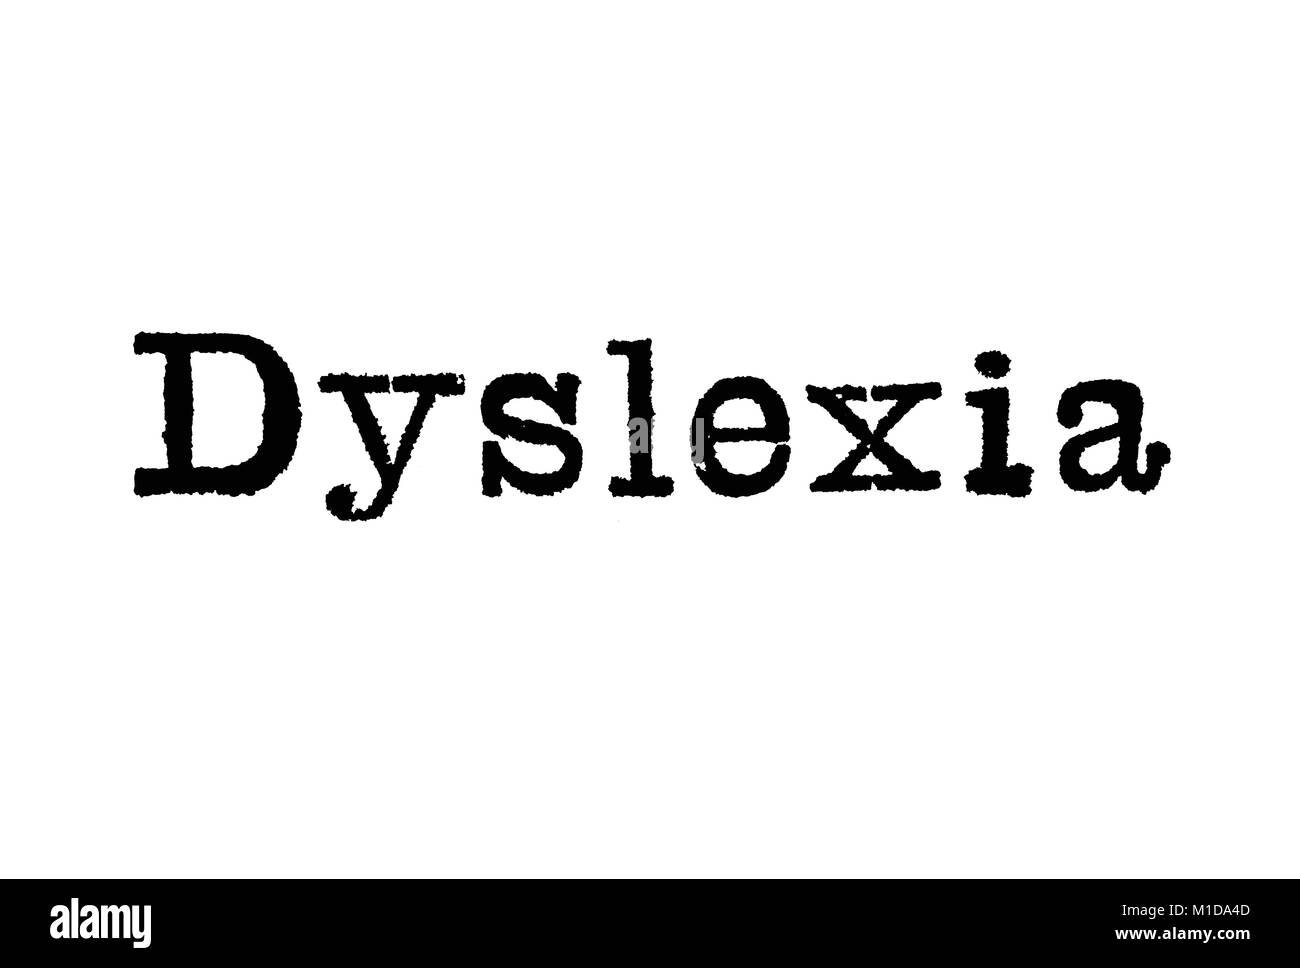 The word Dyslexia from a typewriter on a white background - Stock Image